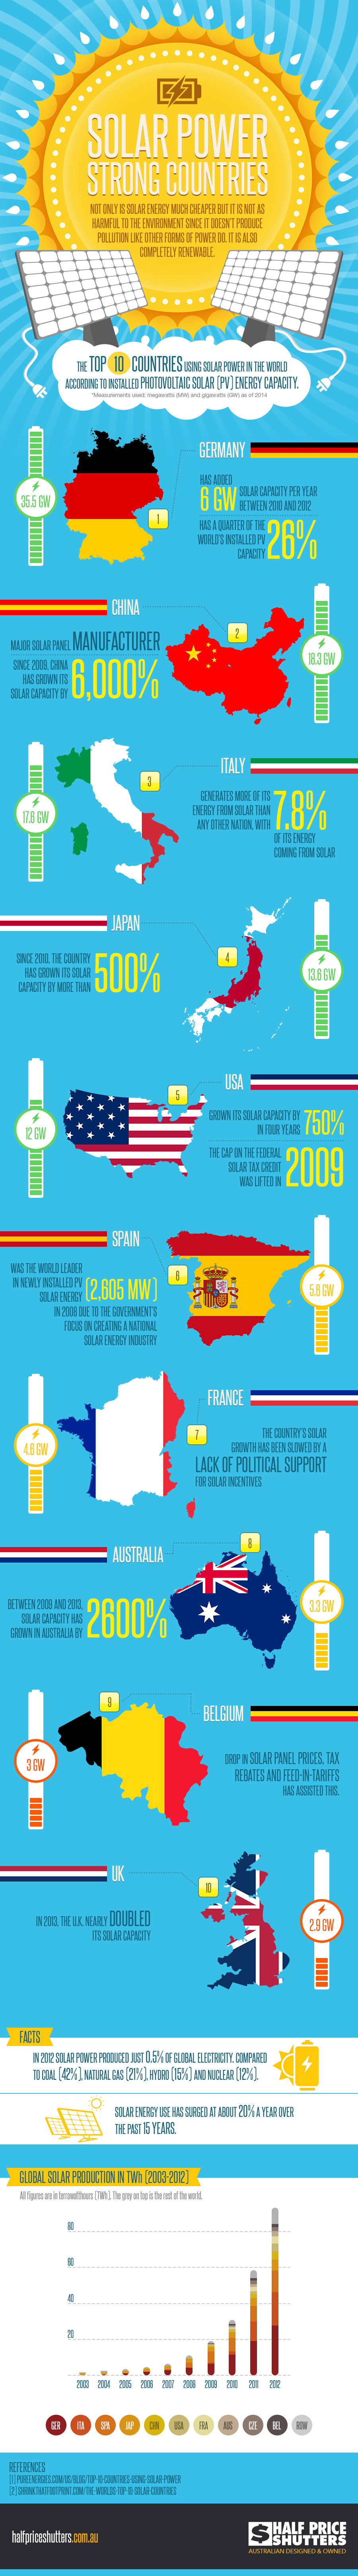 top 10 solar power countries - infographic